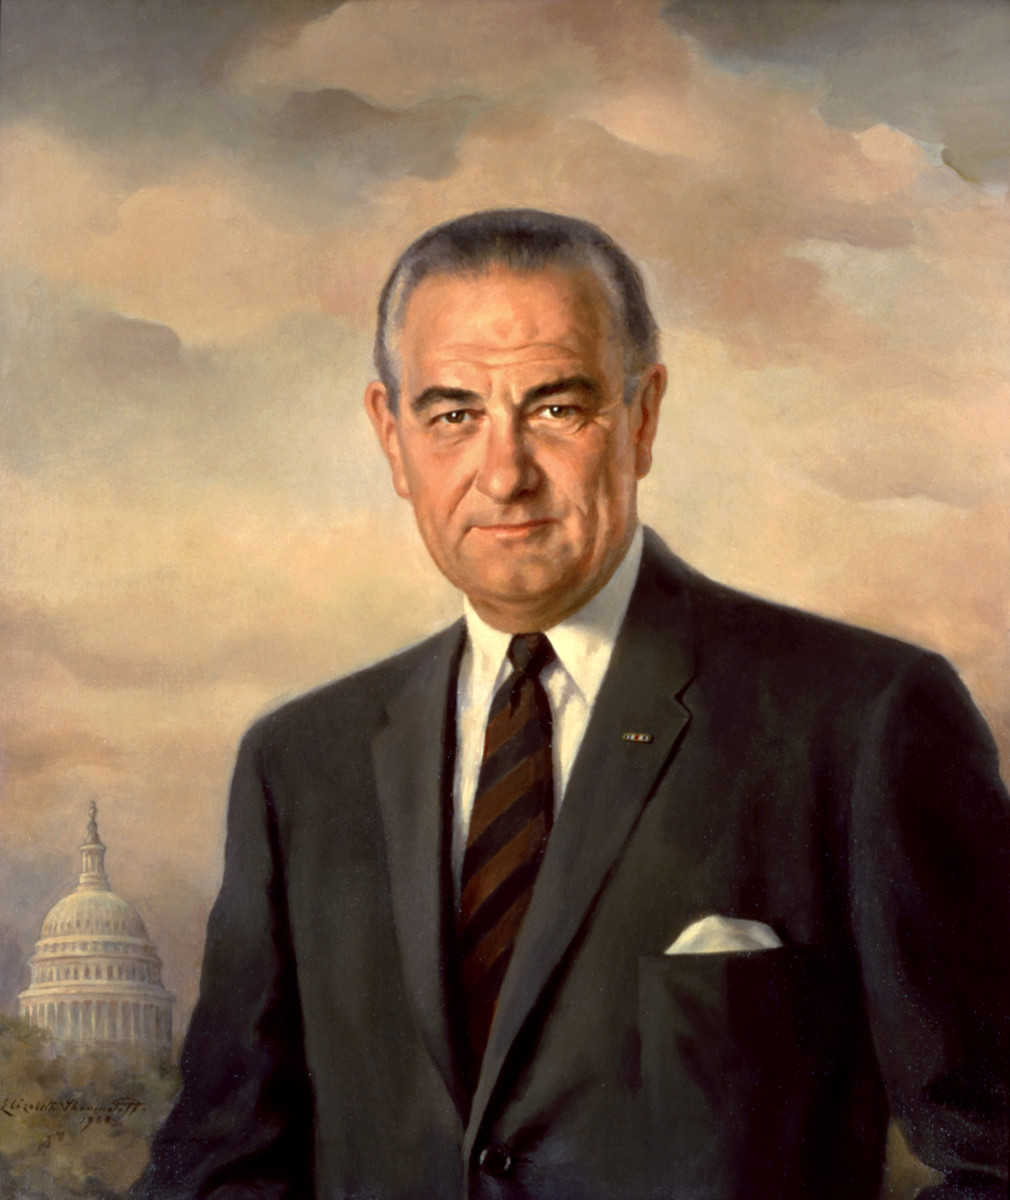 Lyndon B. Johnson: 36th President